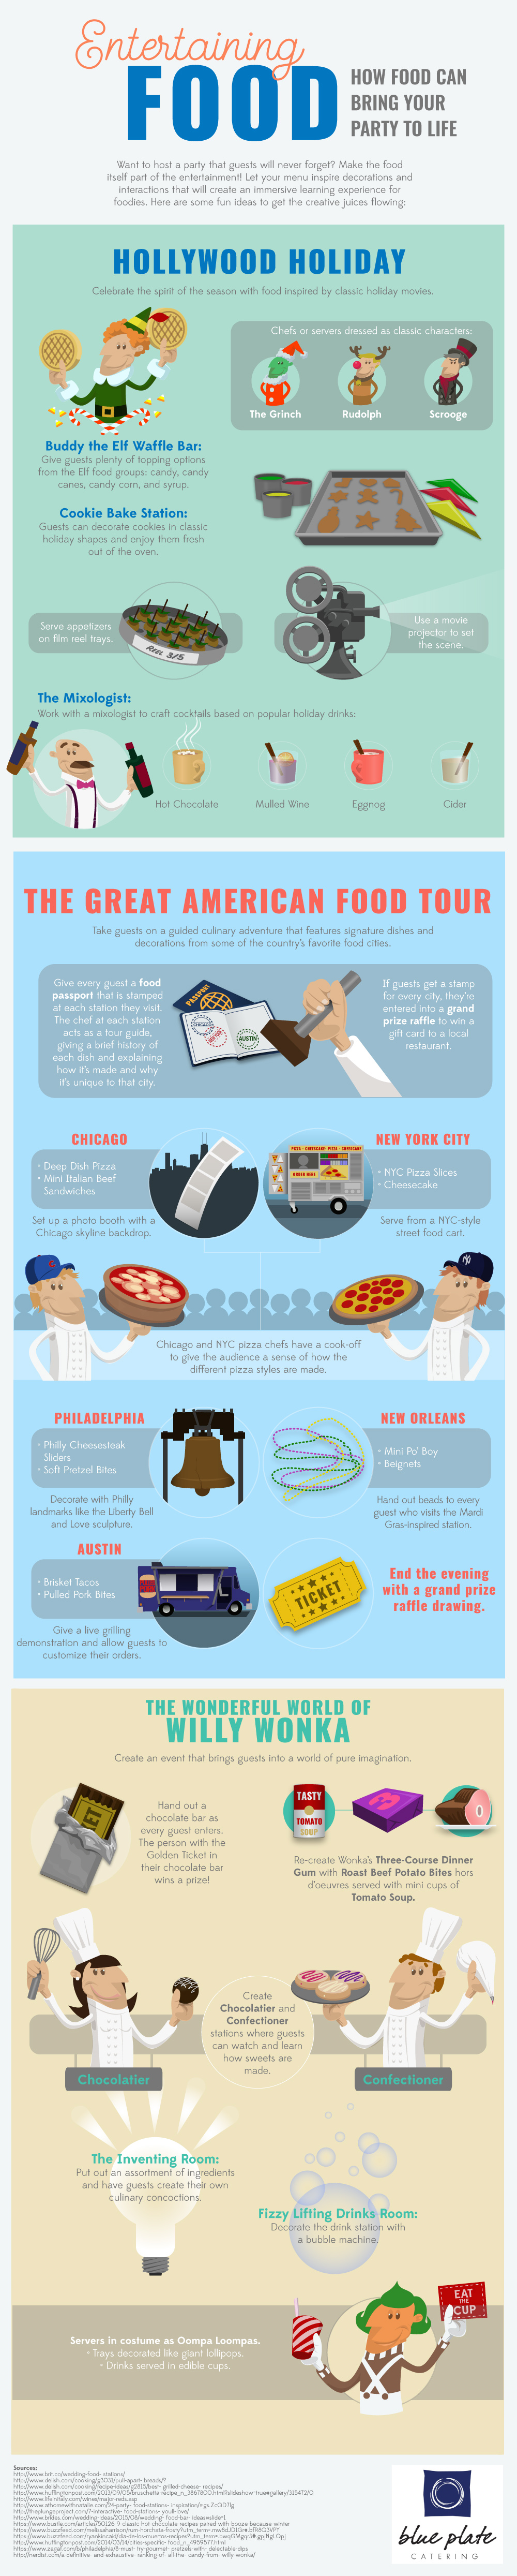 Food As Entertainment Infographic | Blue Plate Catering